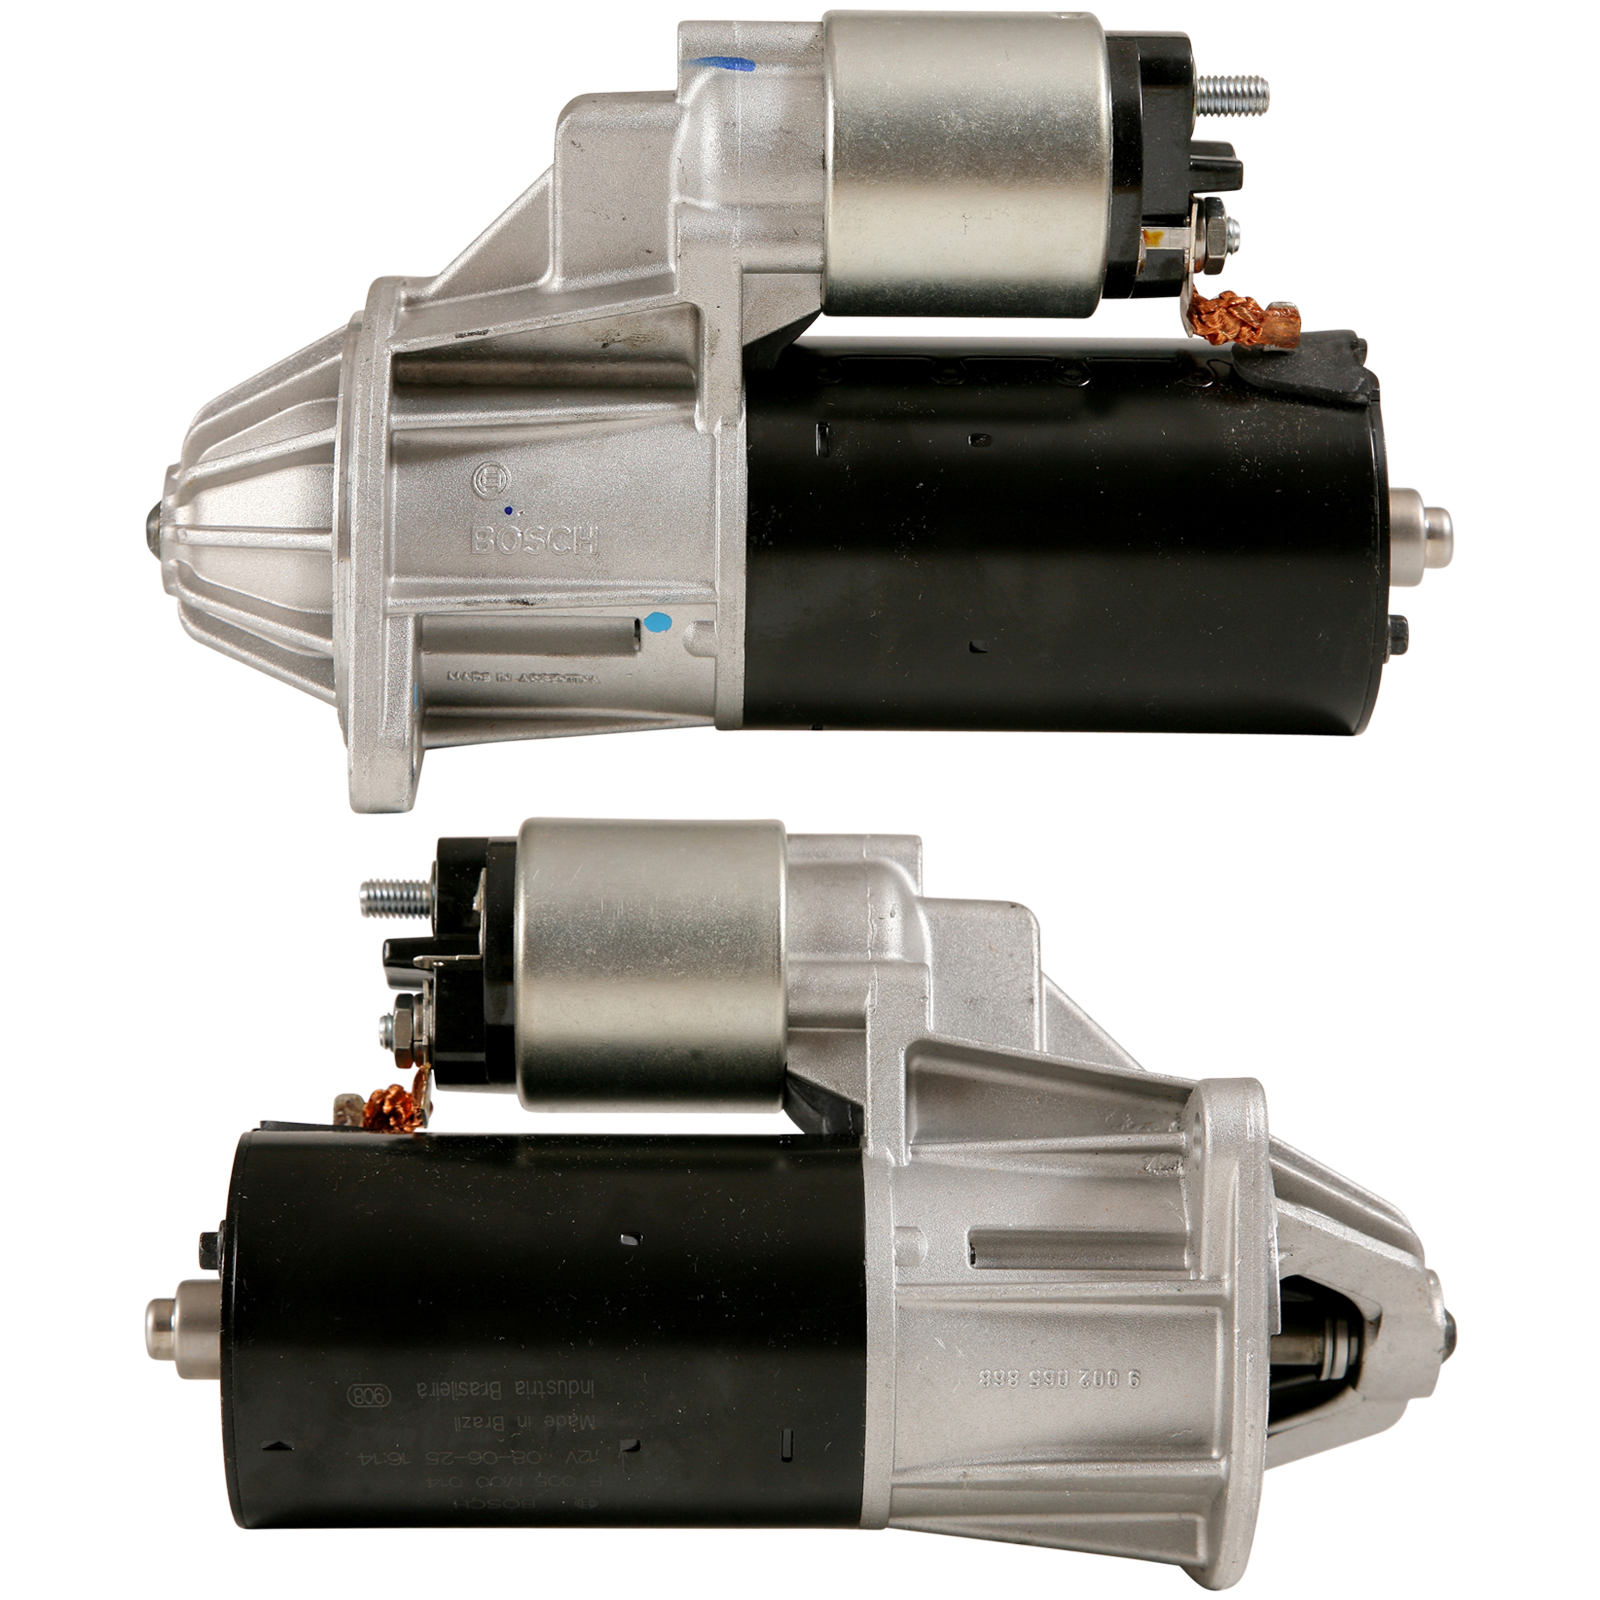 hight resolution of holden starter motor wiring diagram jeffdoedesign com ac motor wiring diagram ac motor wiring diagram